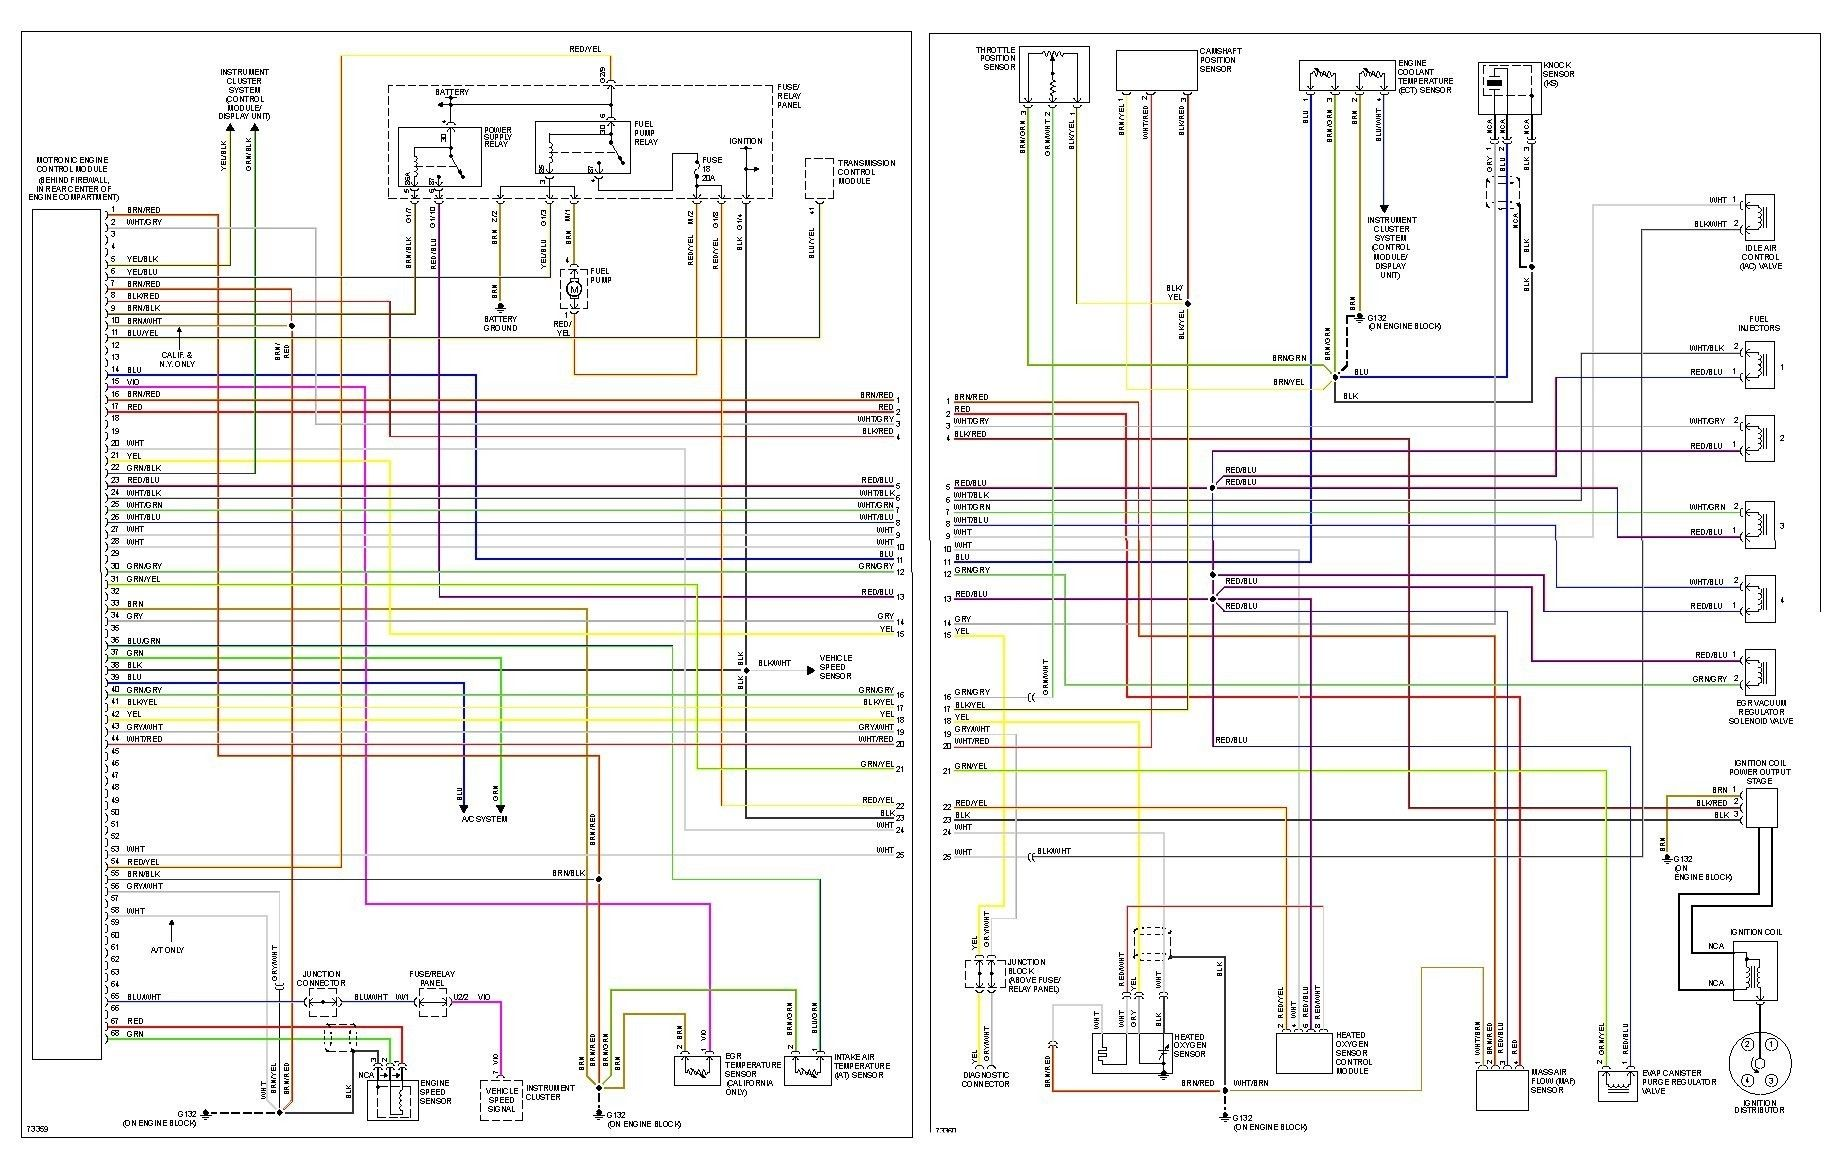 New Golf 4 1.9 Tdi Wiring Diagram #diagram #diagramsample ...